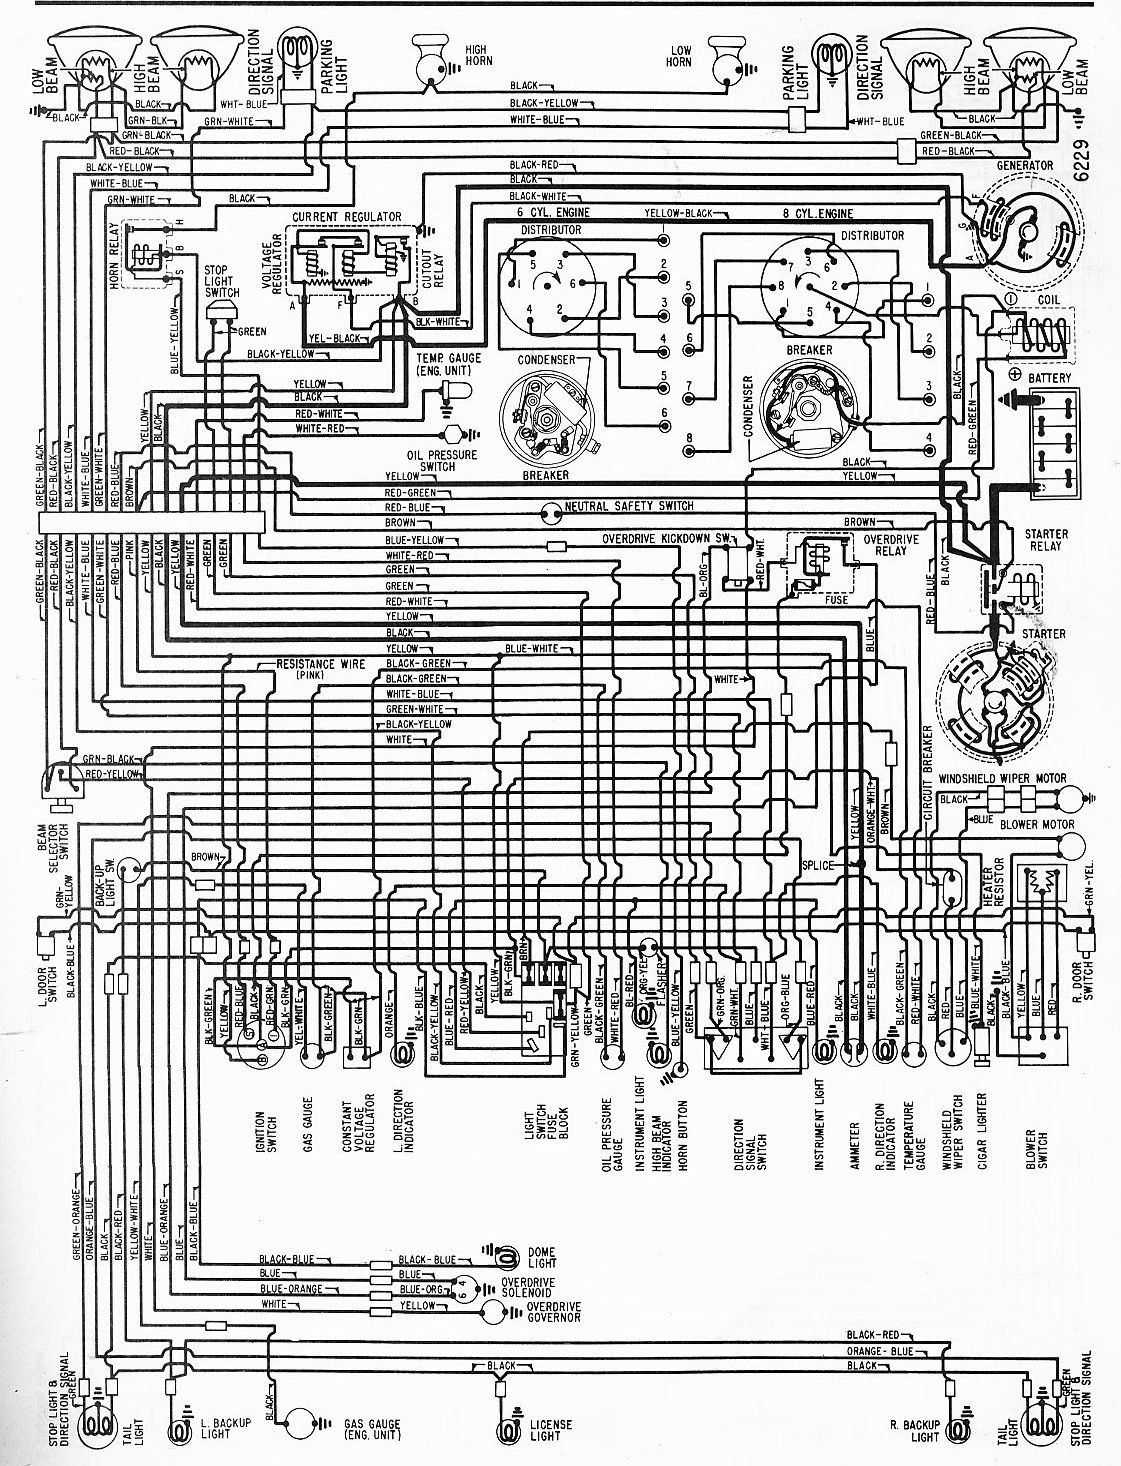 small resolution of chevrolet c10 fuse box wiring diagram toolbox 1985 chevy c10 fuse box location 1970 chevy c10